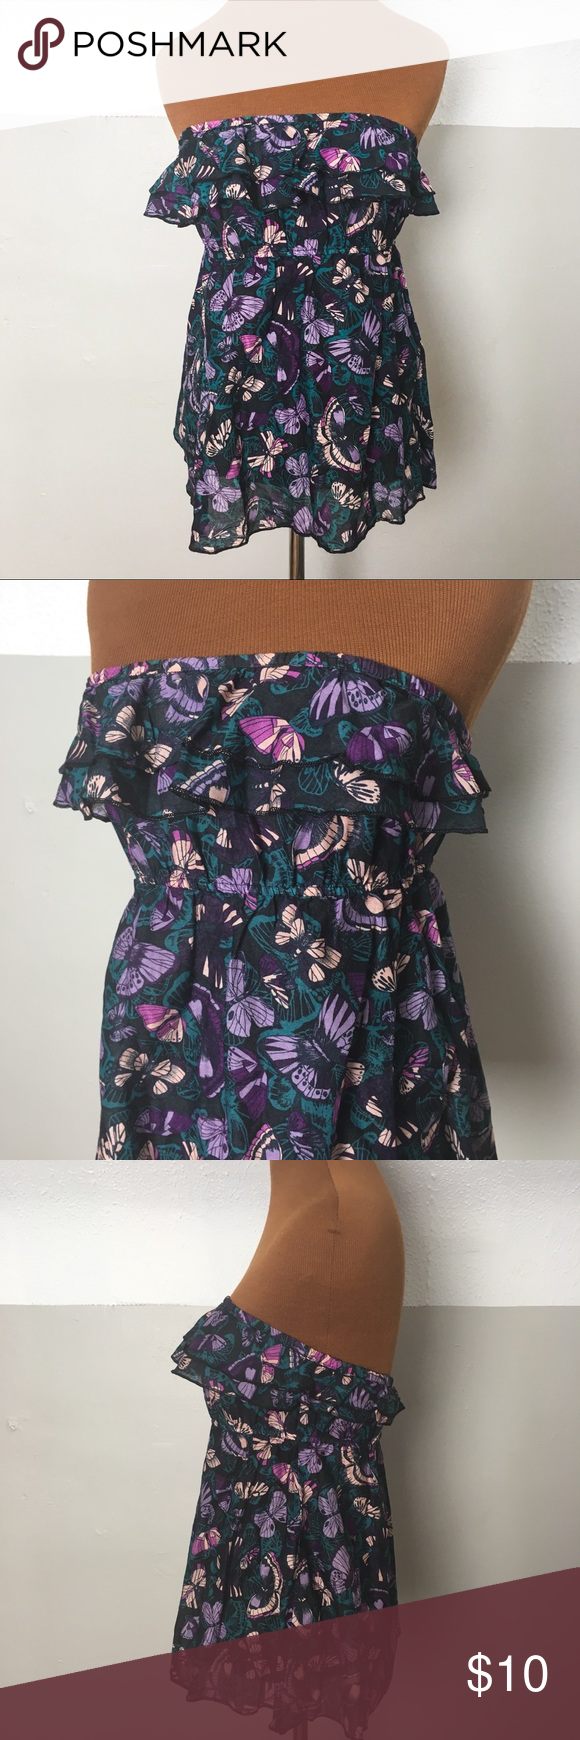 ae5b30a7f0 H M butterfly print tube top with ruffle This top is in excellent condition  with no damage